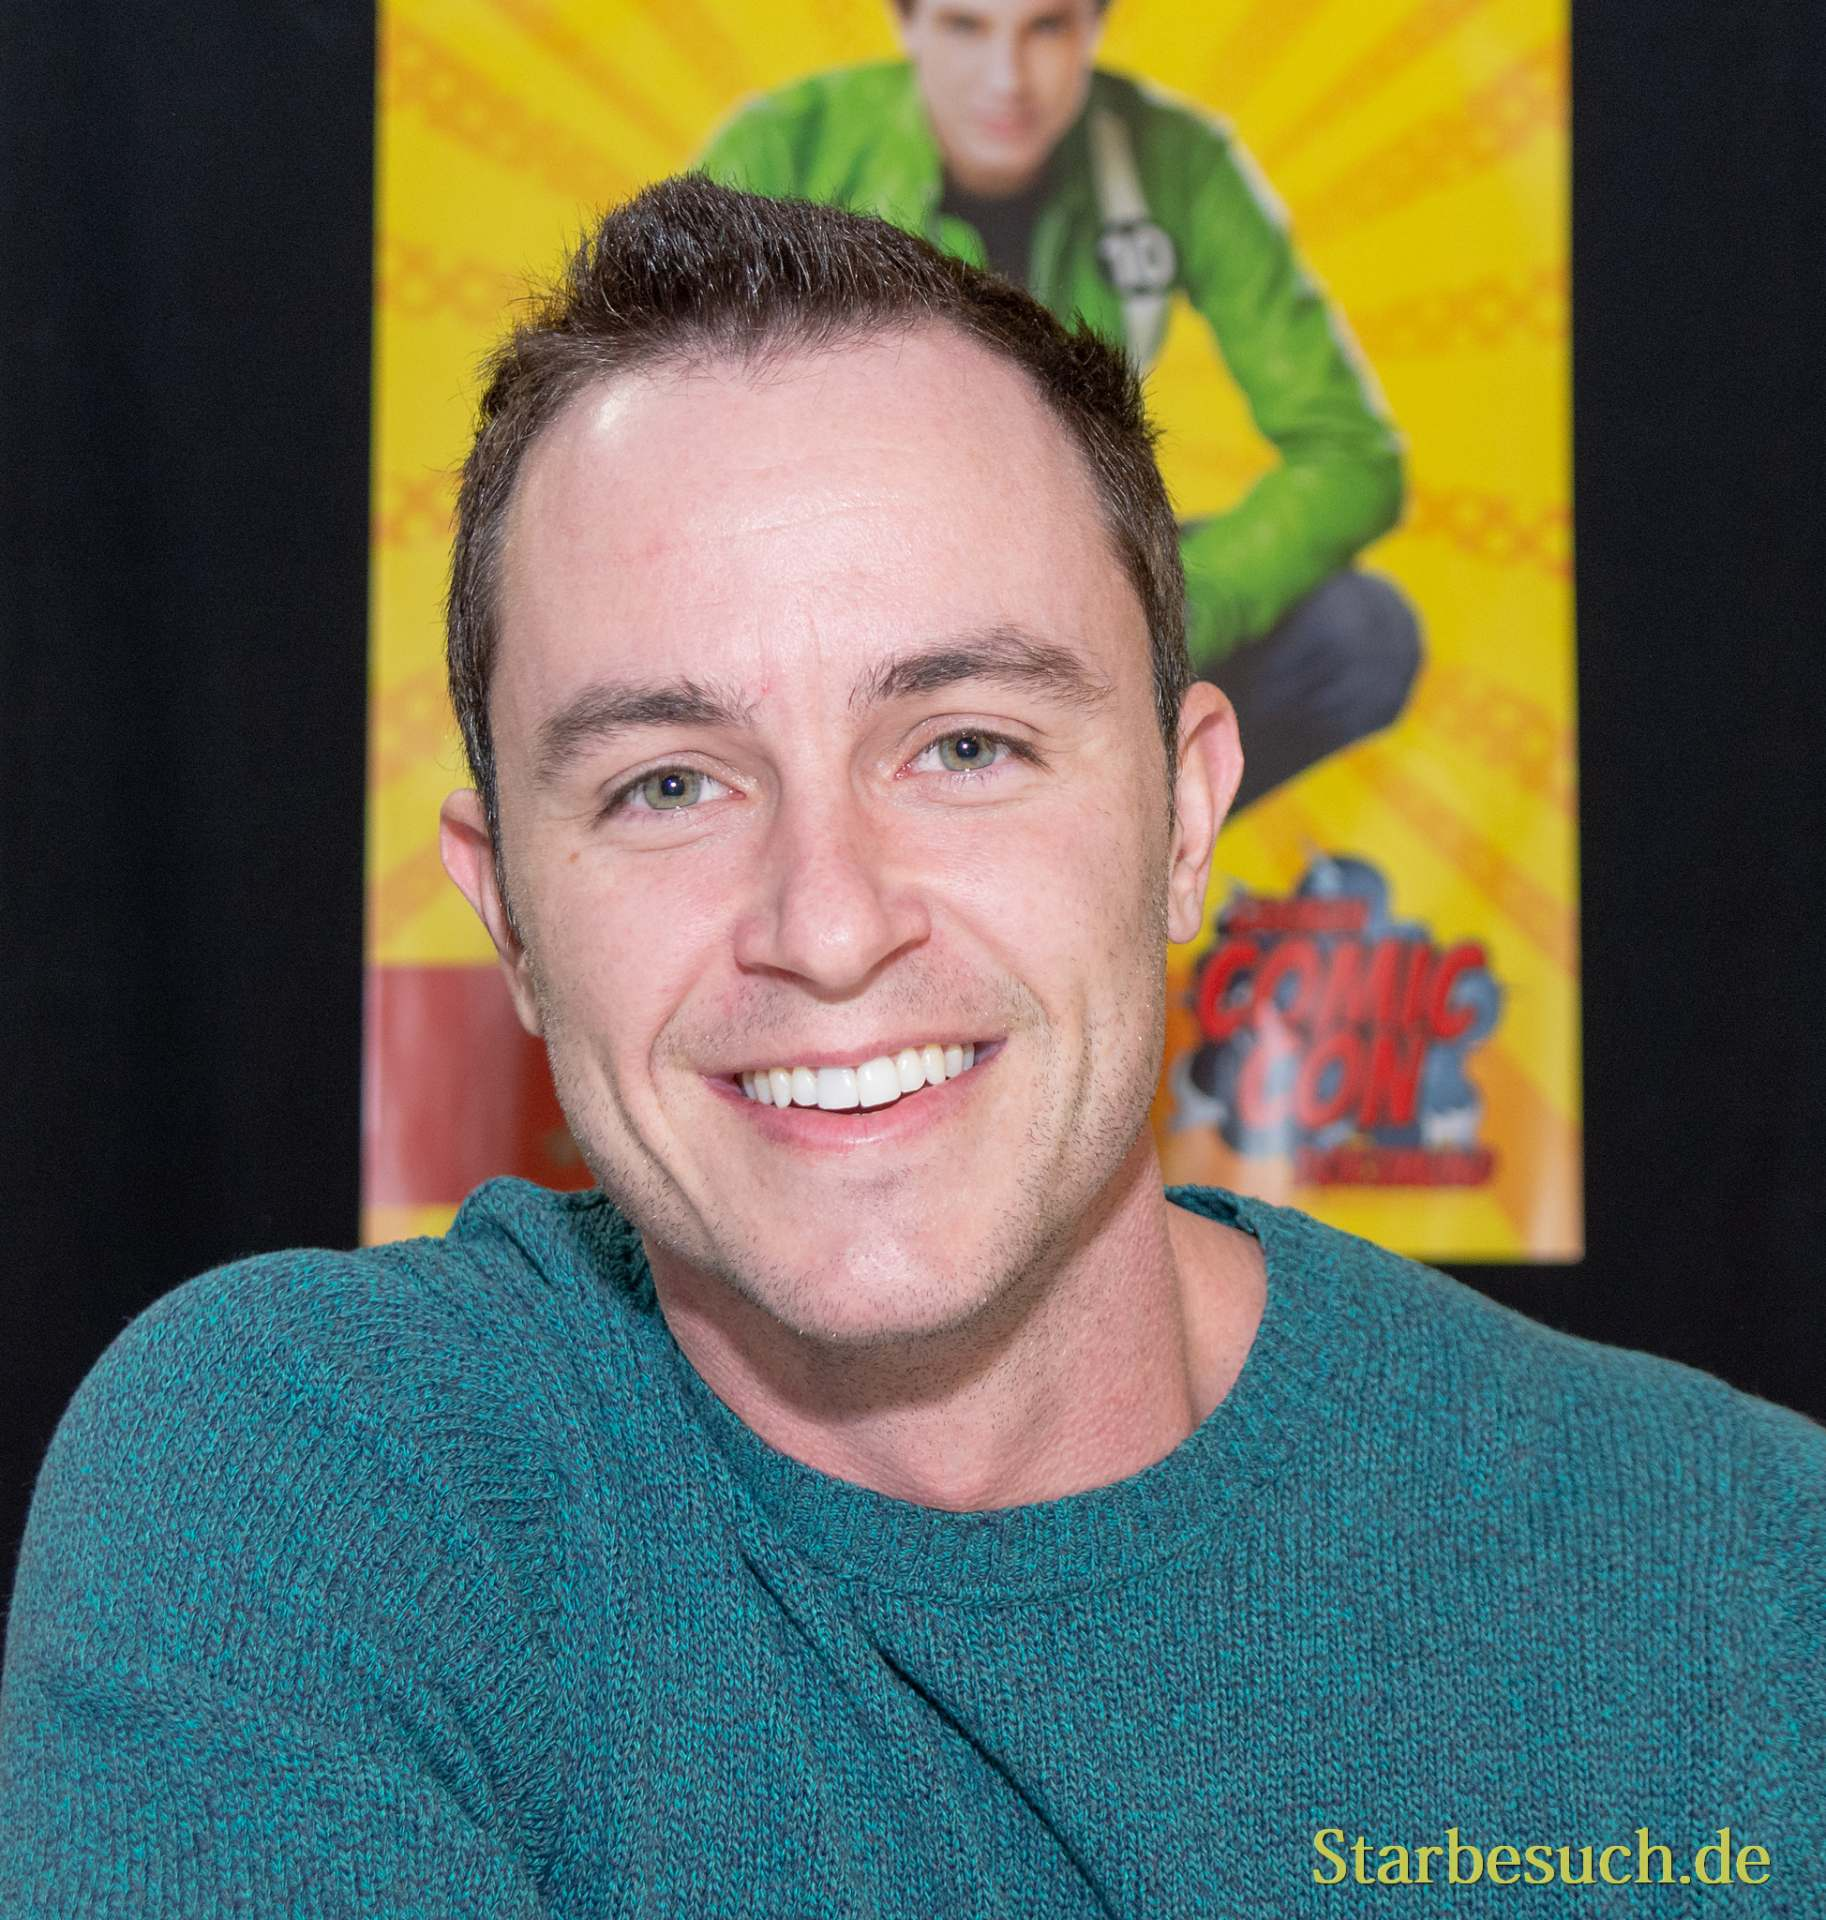 DORTMUND, GERMANY - December 1st 2018: Ryan Kelley (*1986, American actor) at German Comic Con Dortmund, a two day fan convention